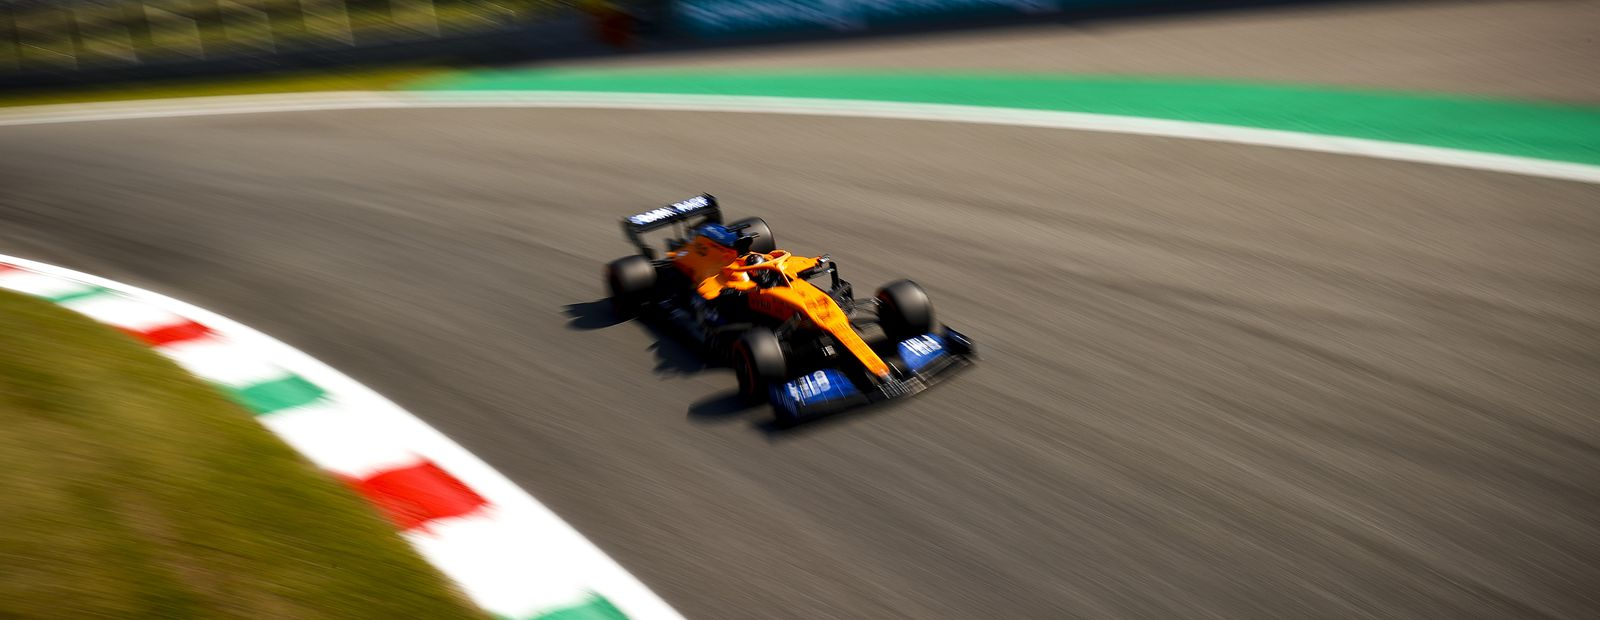 Everything you need to know for the Italian Grand Prix